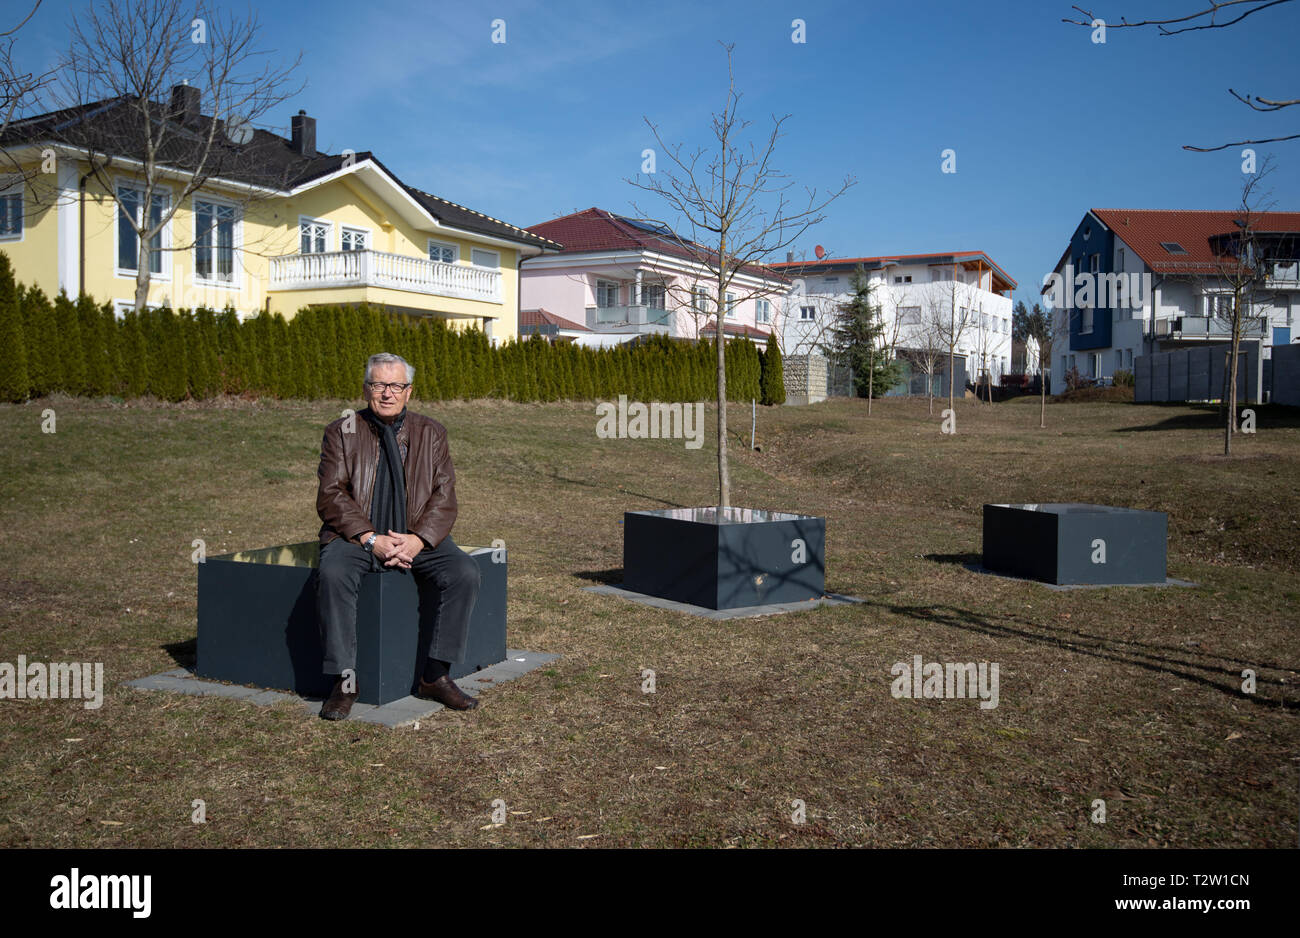 Mutlangen, Germany. 28th Feb, 2019. Peter Seyfried, former mayor of Mutlangen, sits on an object of an installation by the artist Klaudia Dietewich in the Mutlanger Heide residential area. Before being converted into a residential area, the site served as a missile base on which US medium-range nuclear missiles of the Pershing II type were stationed. (to dpa: 'No, no, Njet' - The Eastern Alb sends peace signals again) Credit: Marijan Murat/dpa/Alamy Live News - Stock Image